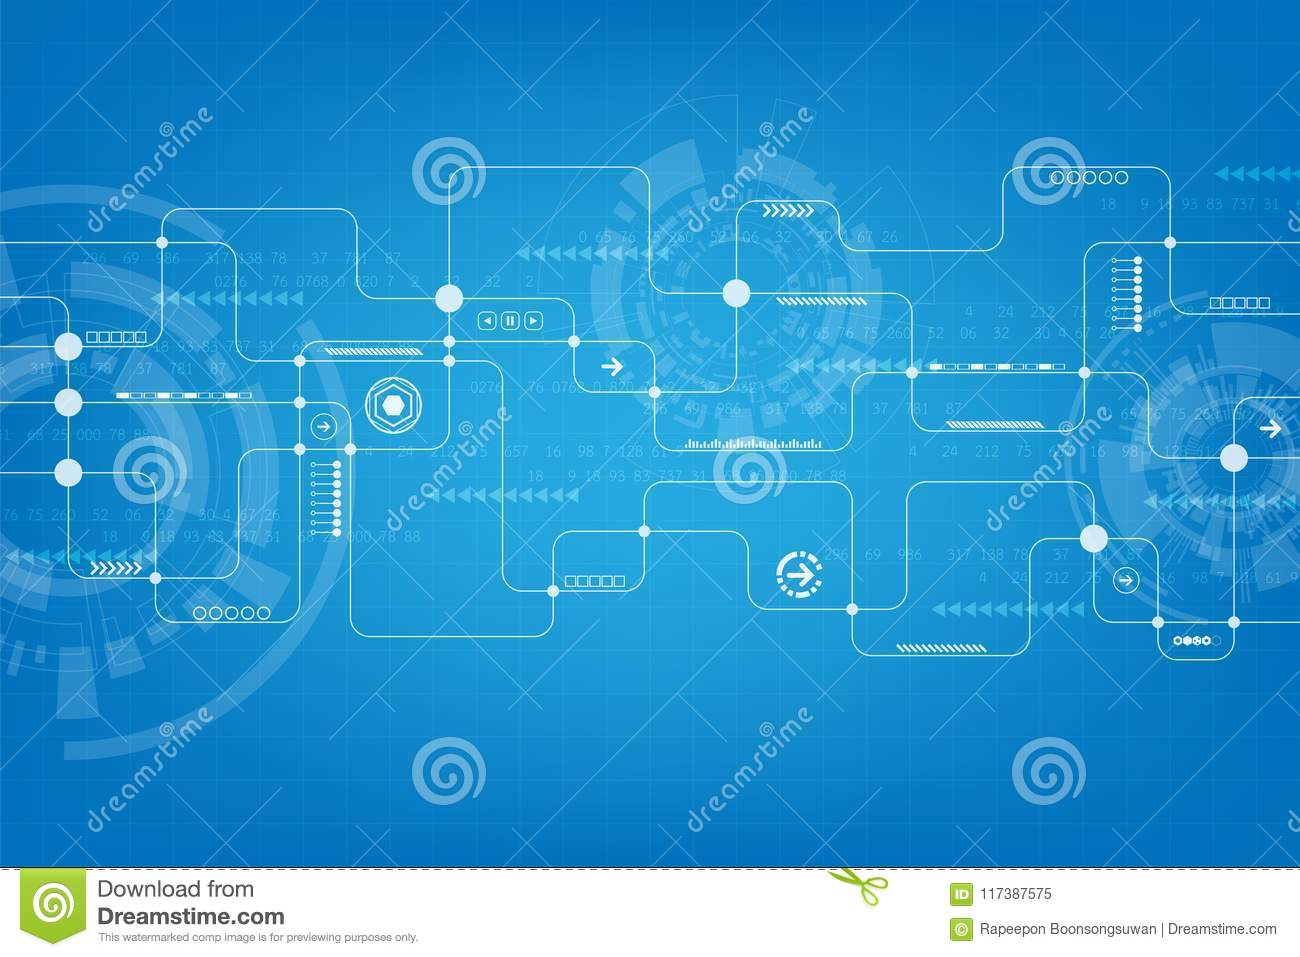 Technology In The Form Of Electronic Circuit Design Stock Vector Basic